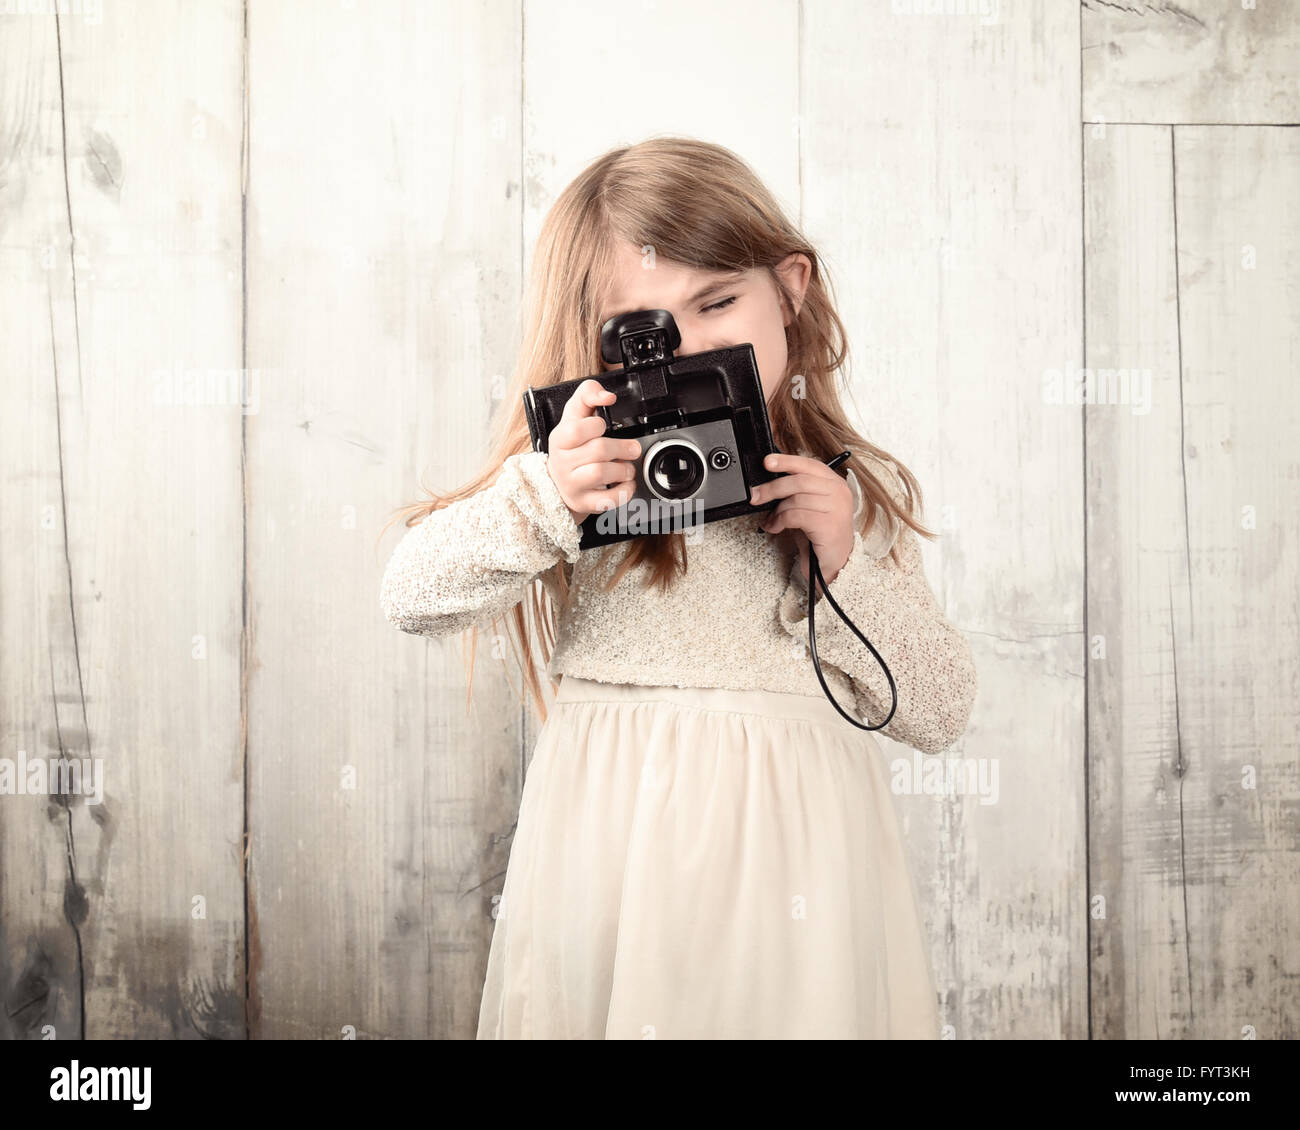 A child photographer is taking a photo with an old film camera against a white wood wall for an art or creativity - Stock Image